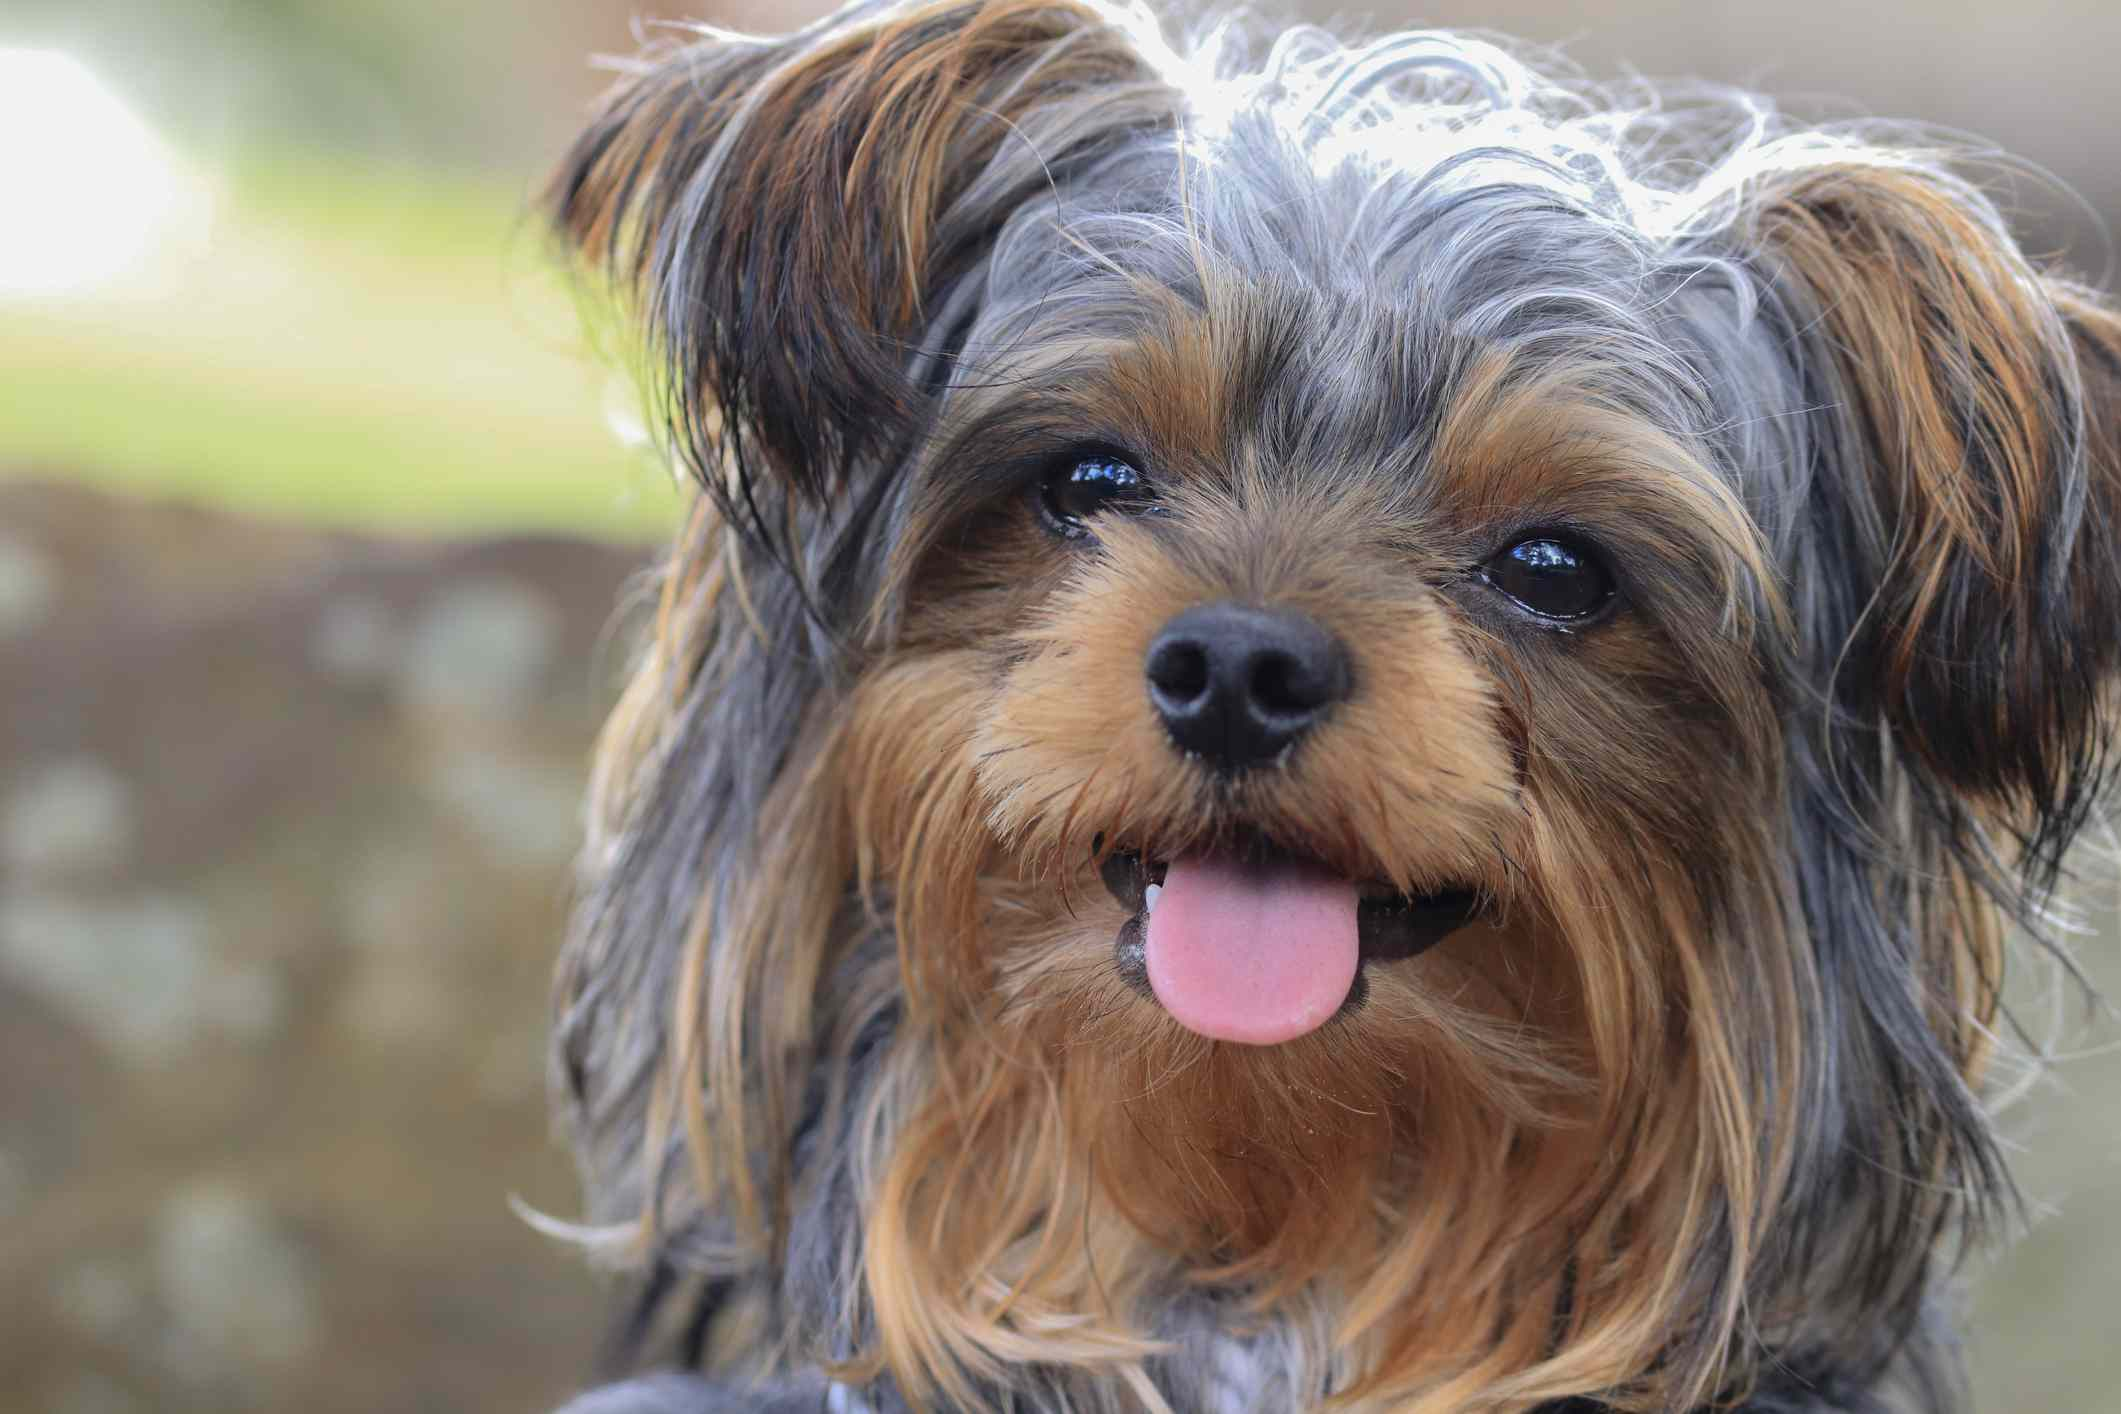 close up of face of yorkie puppy with shaggy tan and gray hair and tongue sticking out